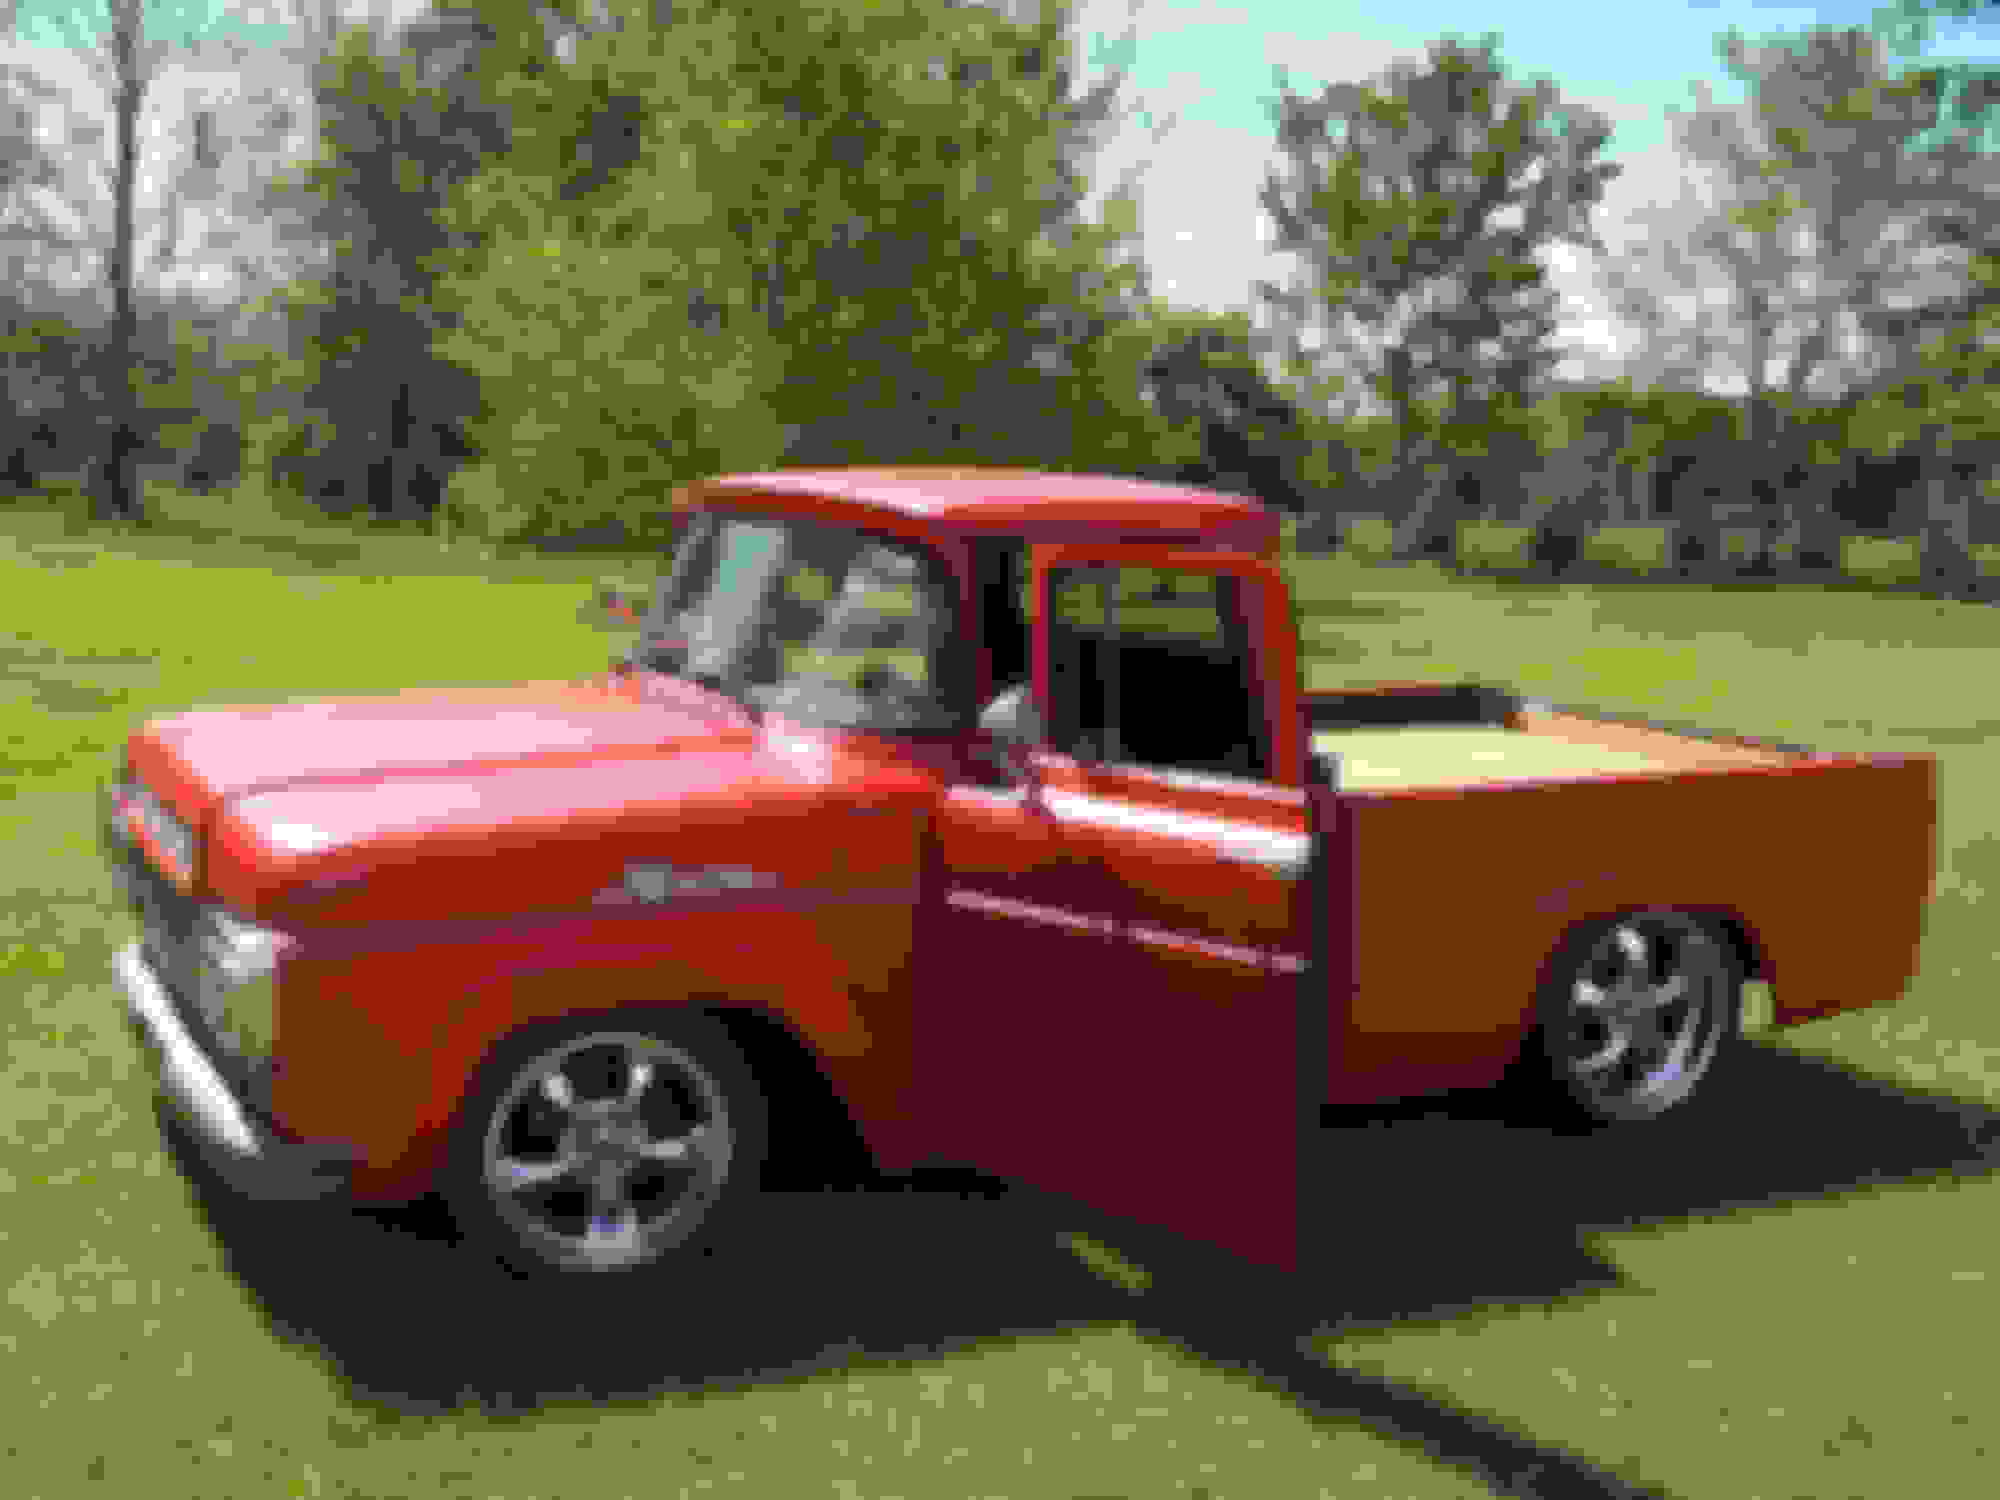 1959 Ford Truck Rat Rod 1954 Chevy Chopped And Bagged Lucky Red Restomod Ratrod Hotrod Lowered Rims Mod Hood Chop Bumper Pancake Classic